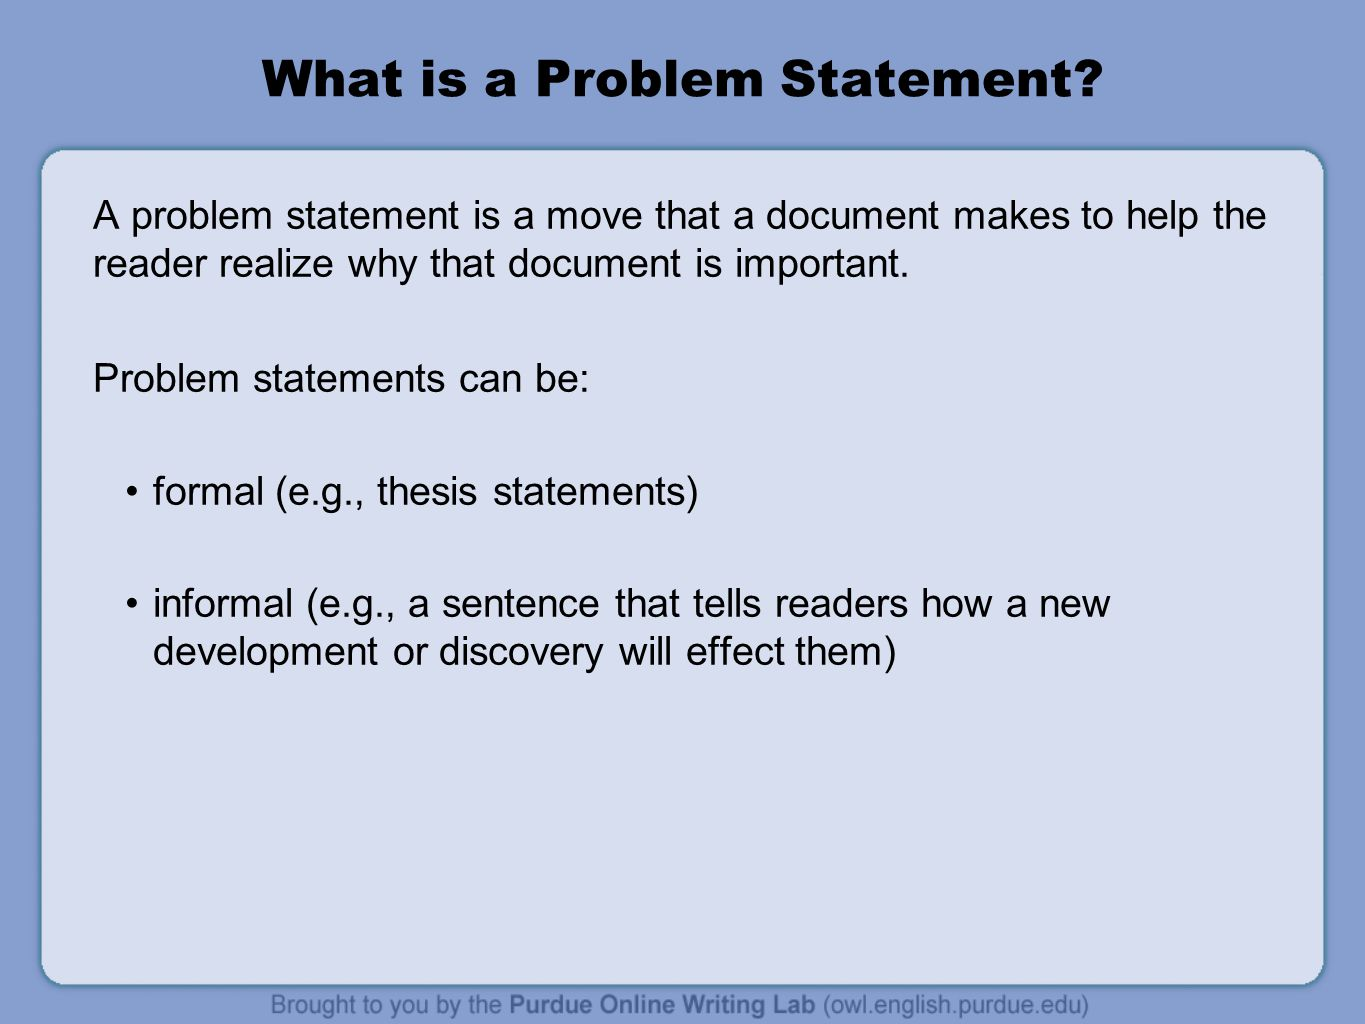 Formal Problem Statements An example of a formal problem statement would be the thesis statement that should appear in the introduction of your document.